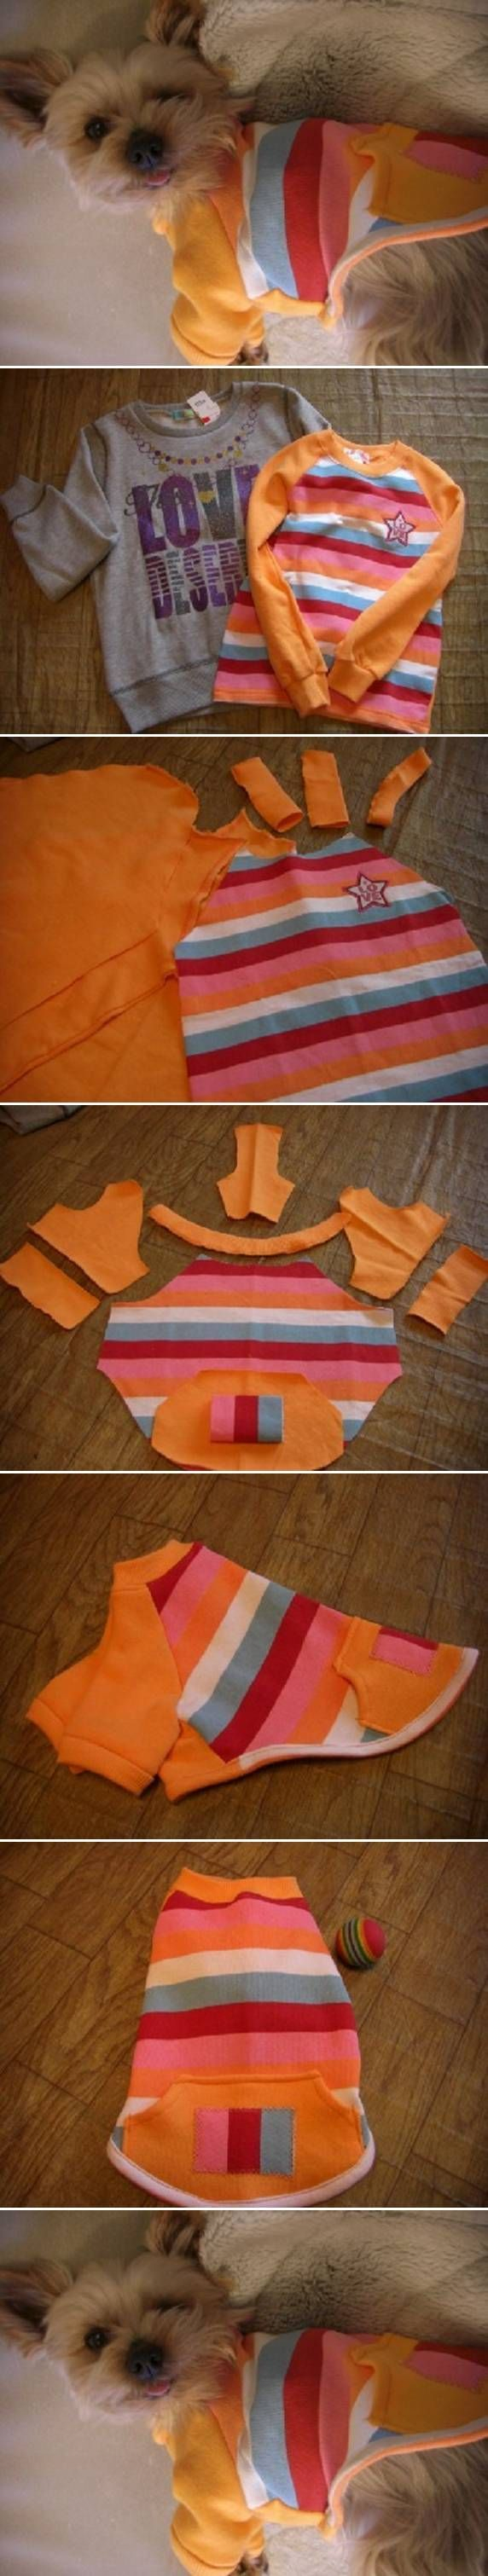 DIY Sweater Dog Clothes - For doggy in the winter